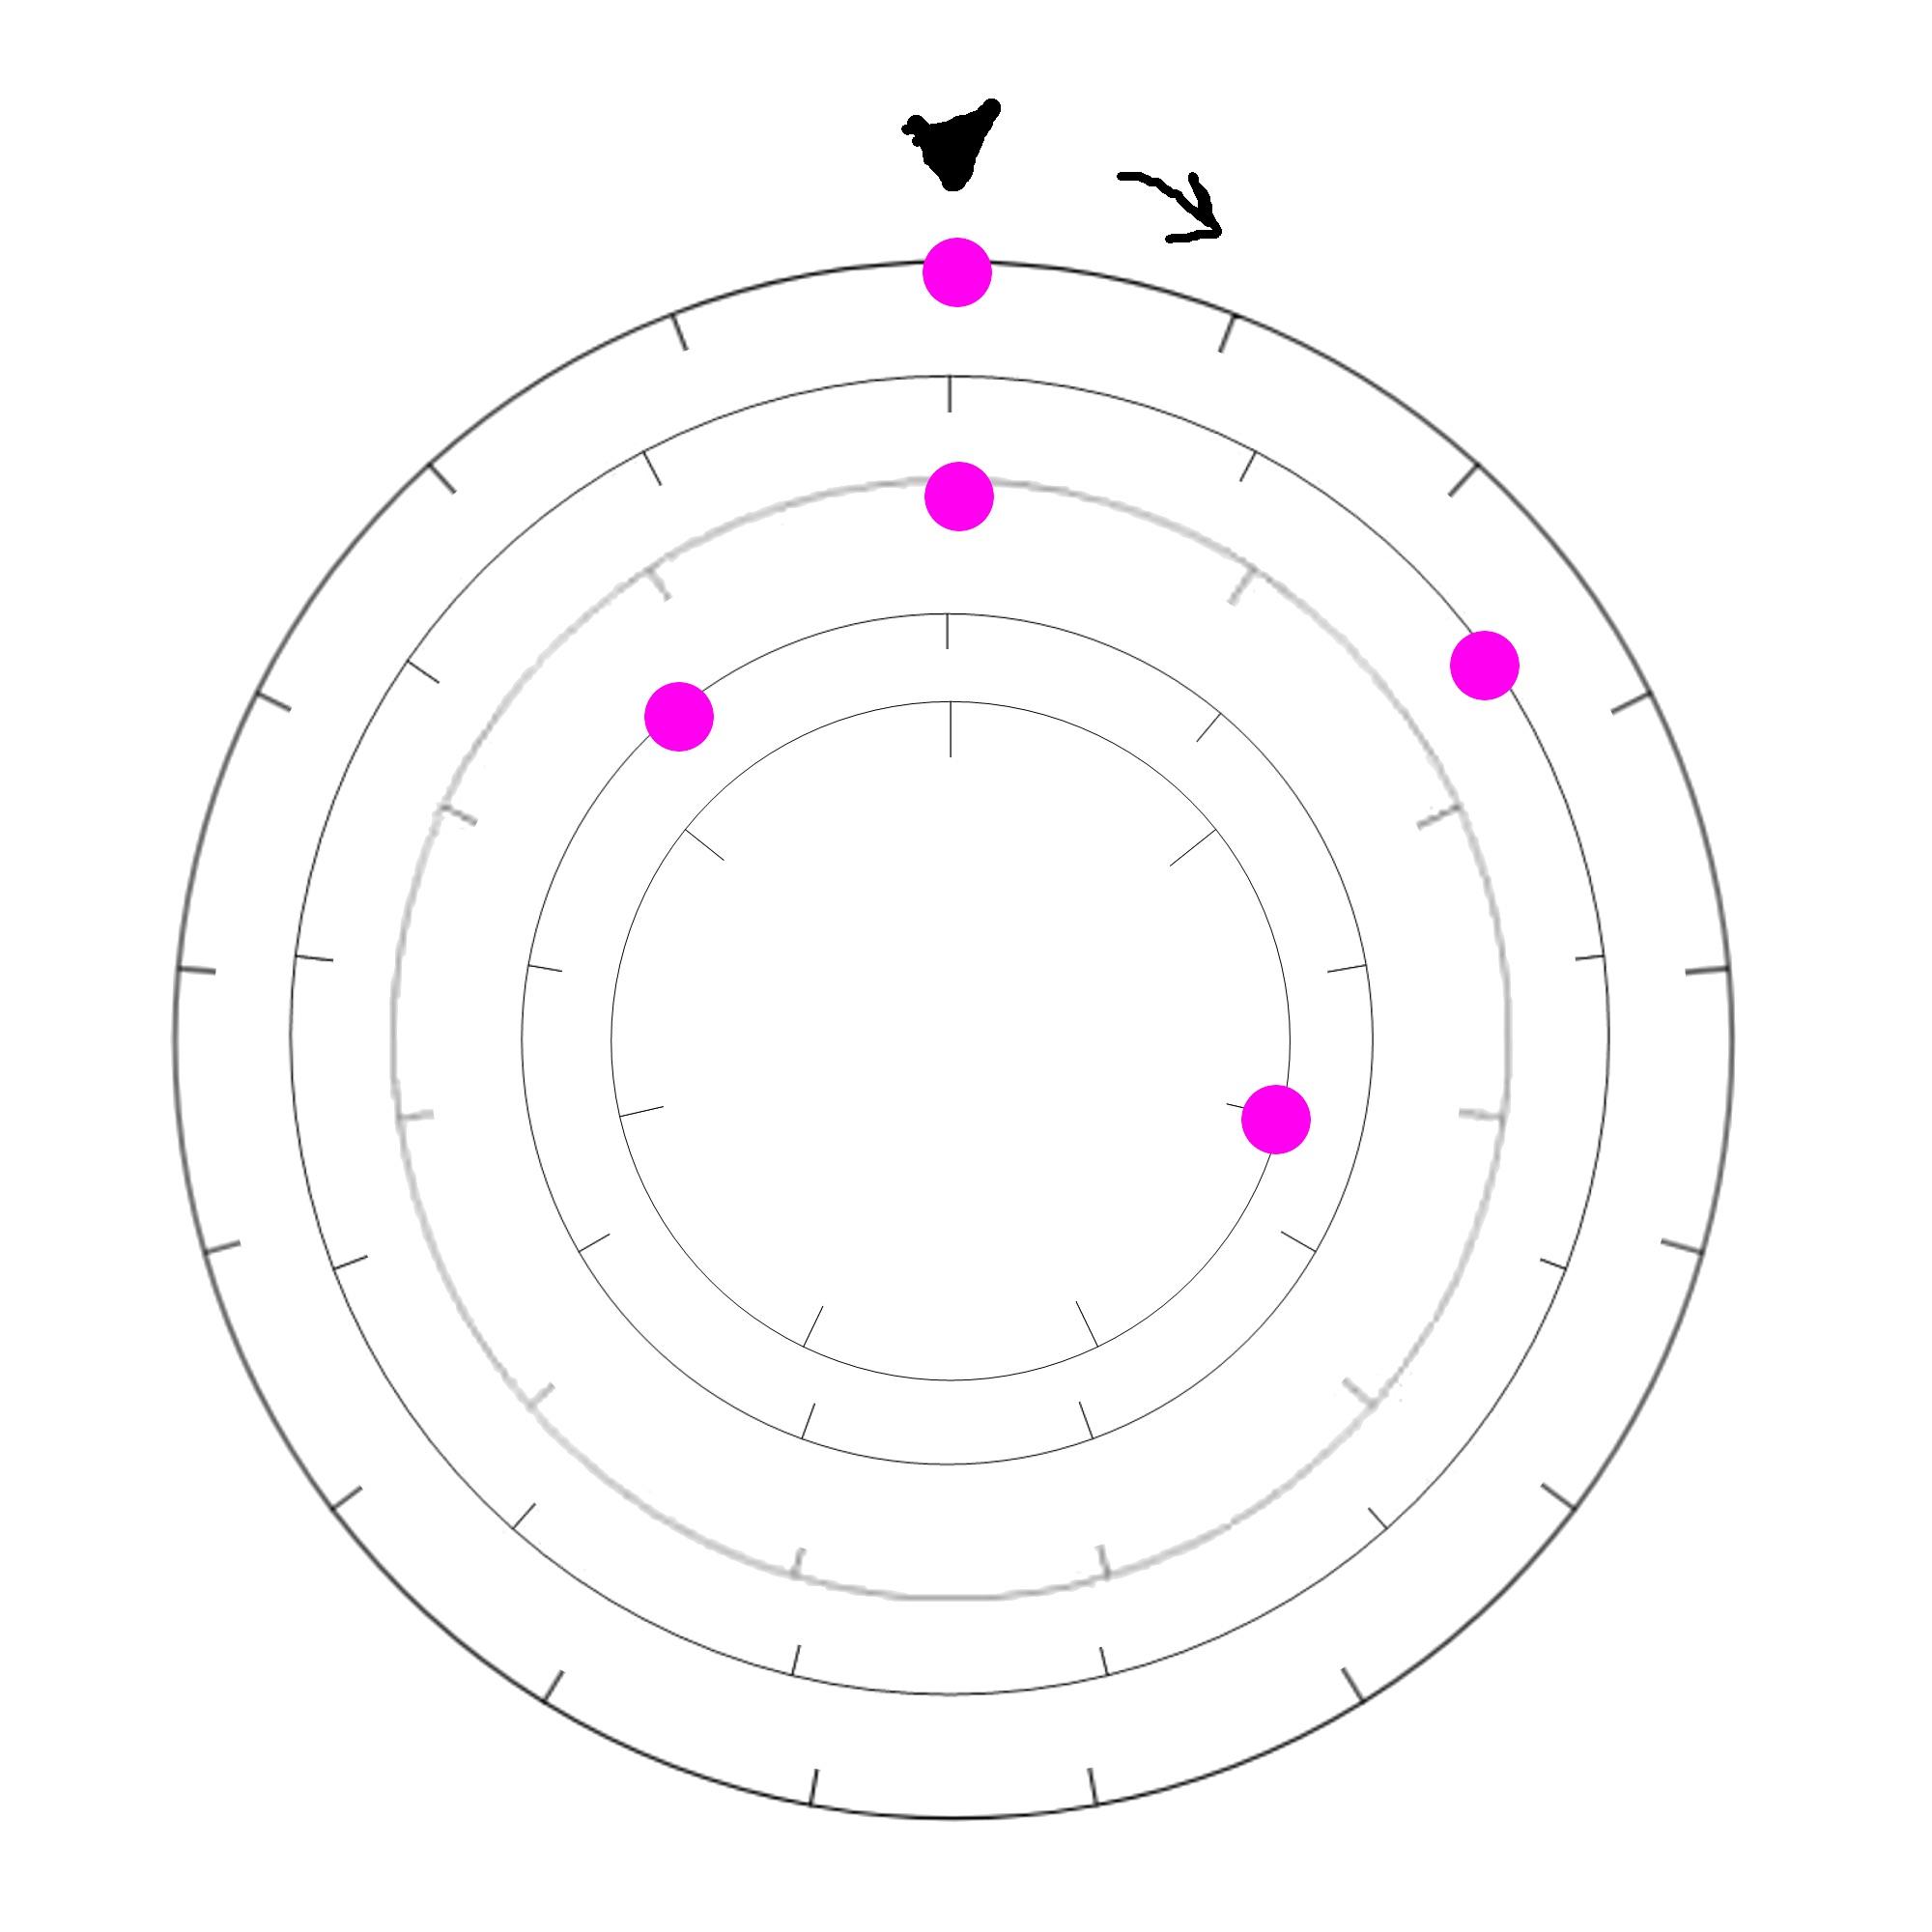 Five nested wheels with rotating intervals, an arrow at the top, and a pink dot on one of the interval steps for each wheel